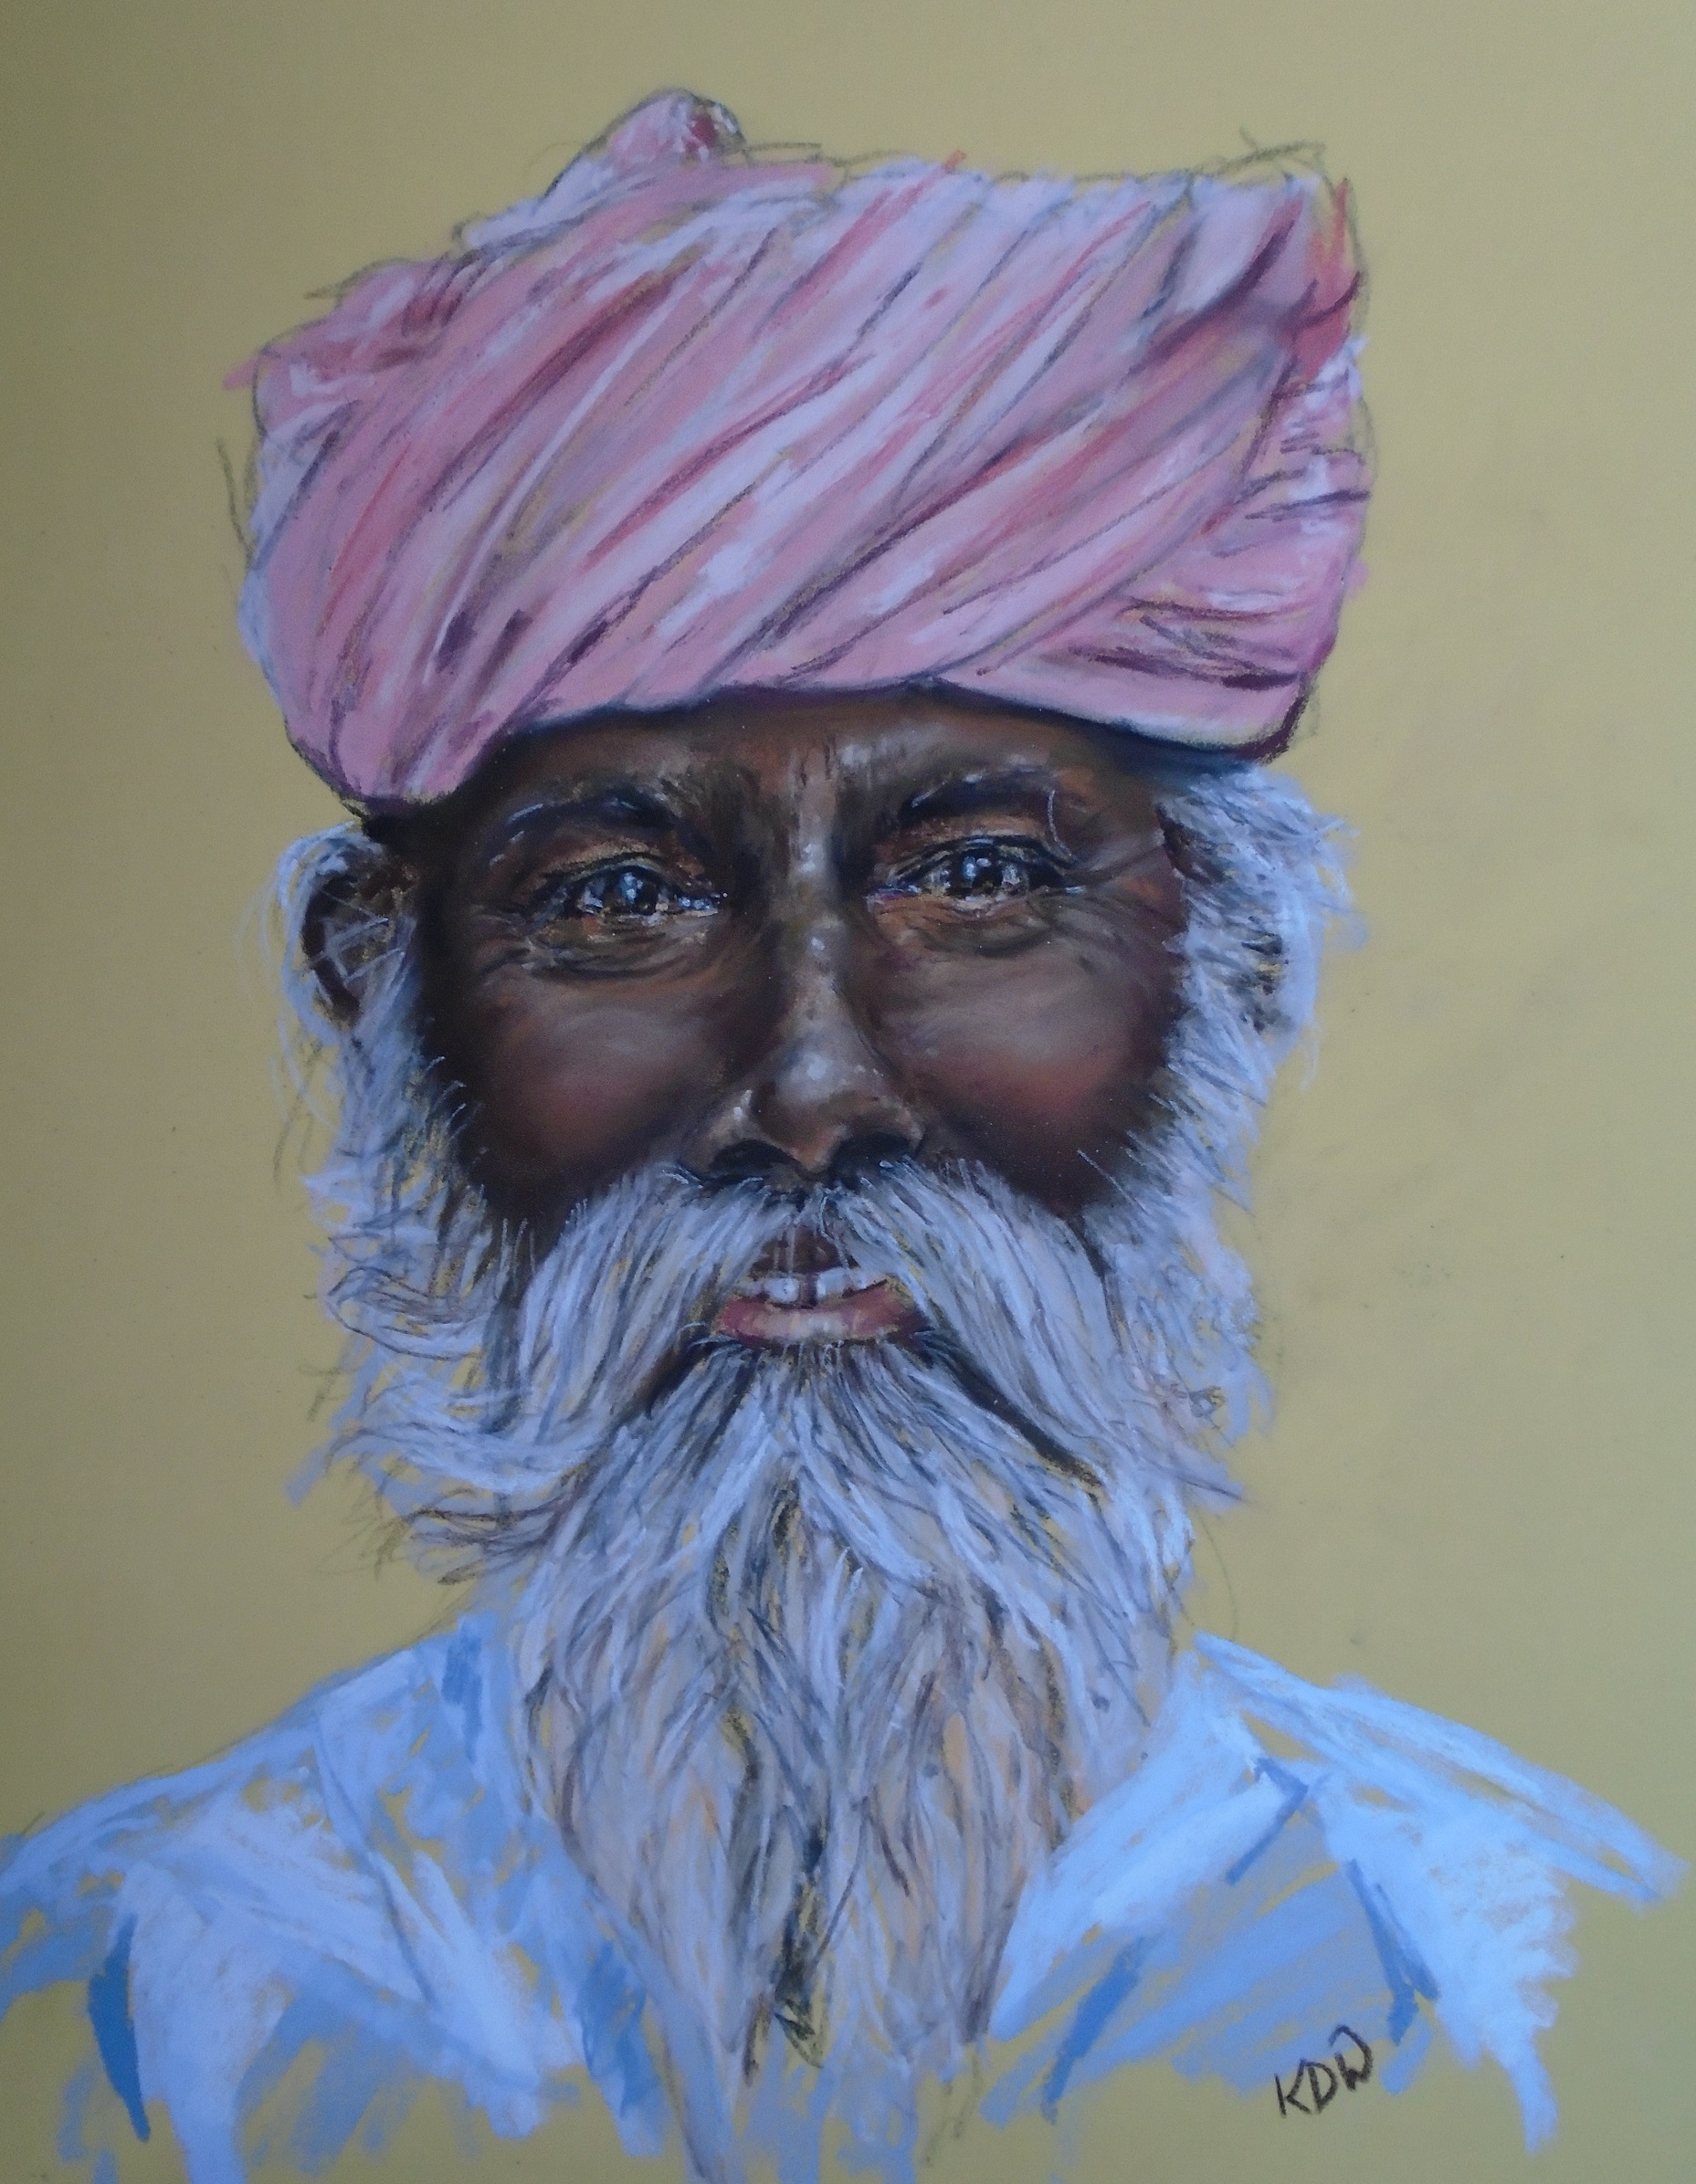 Portrait of a Sikh Gentleman